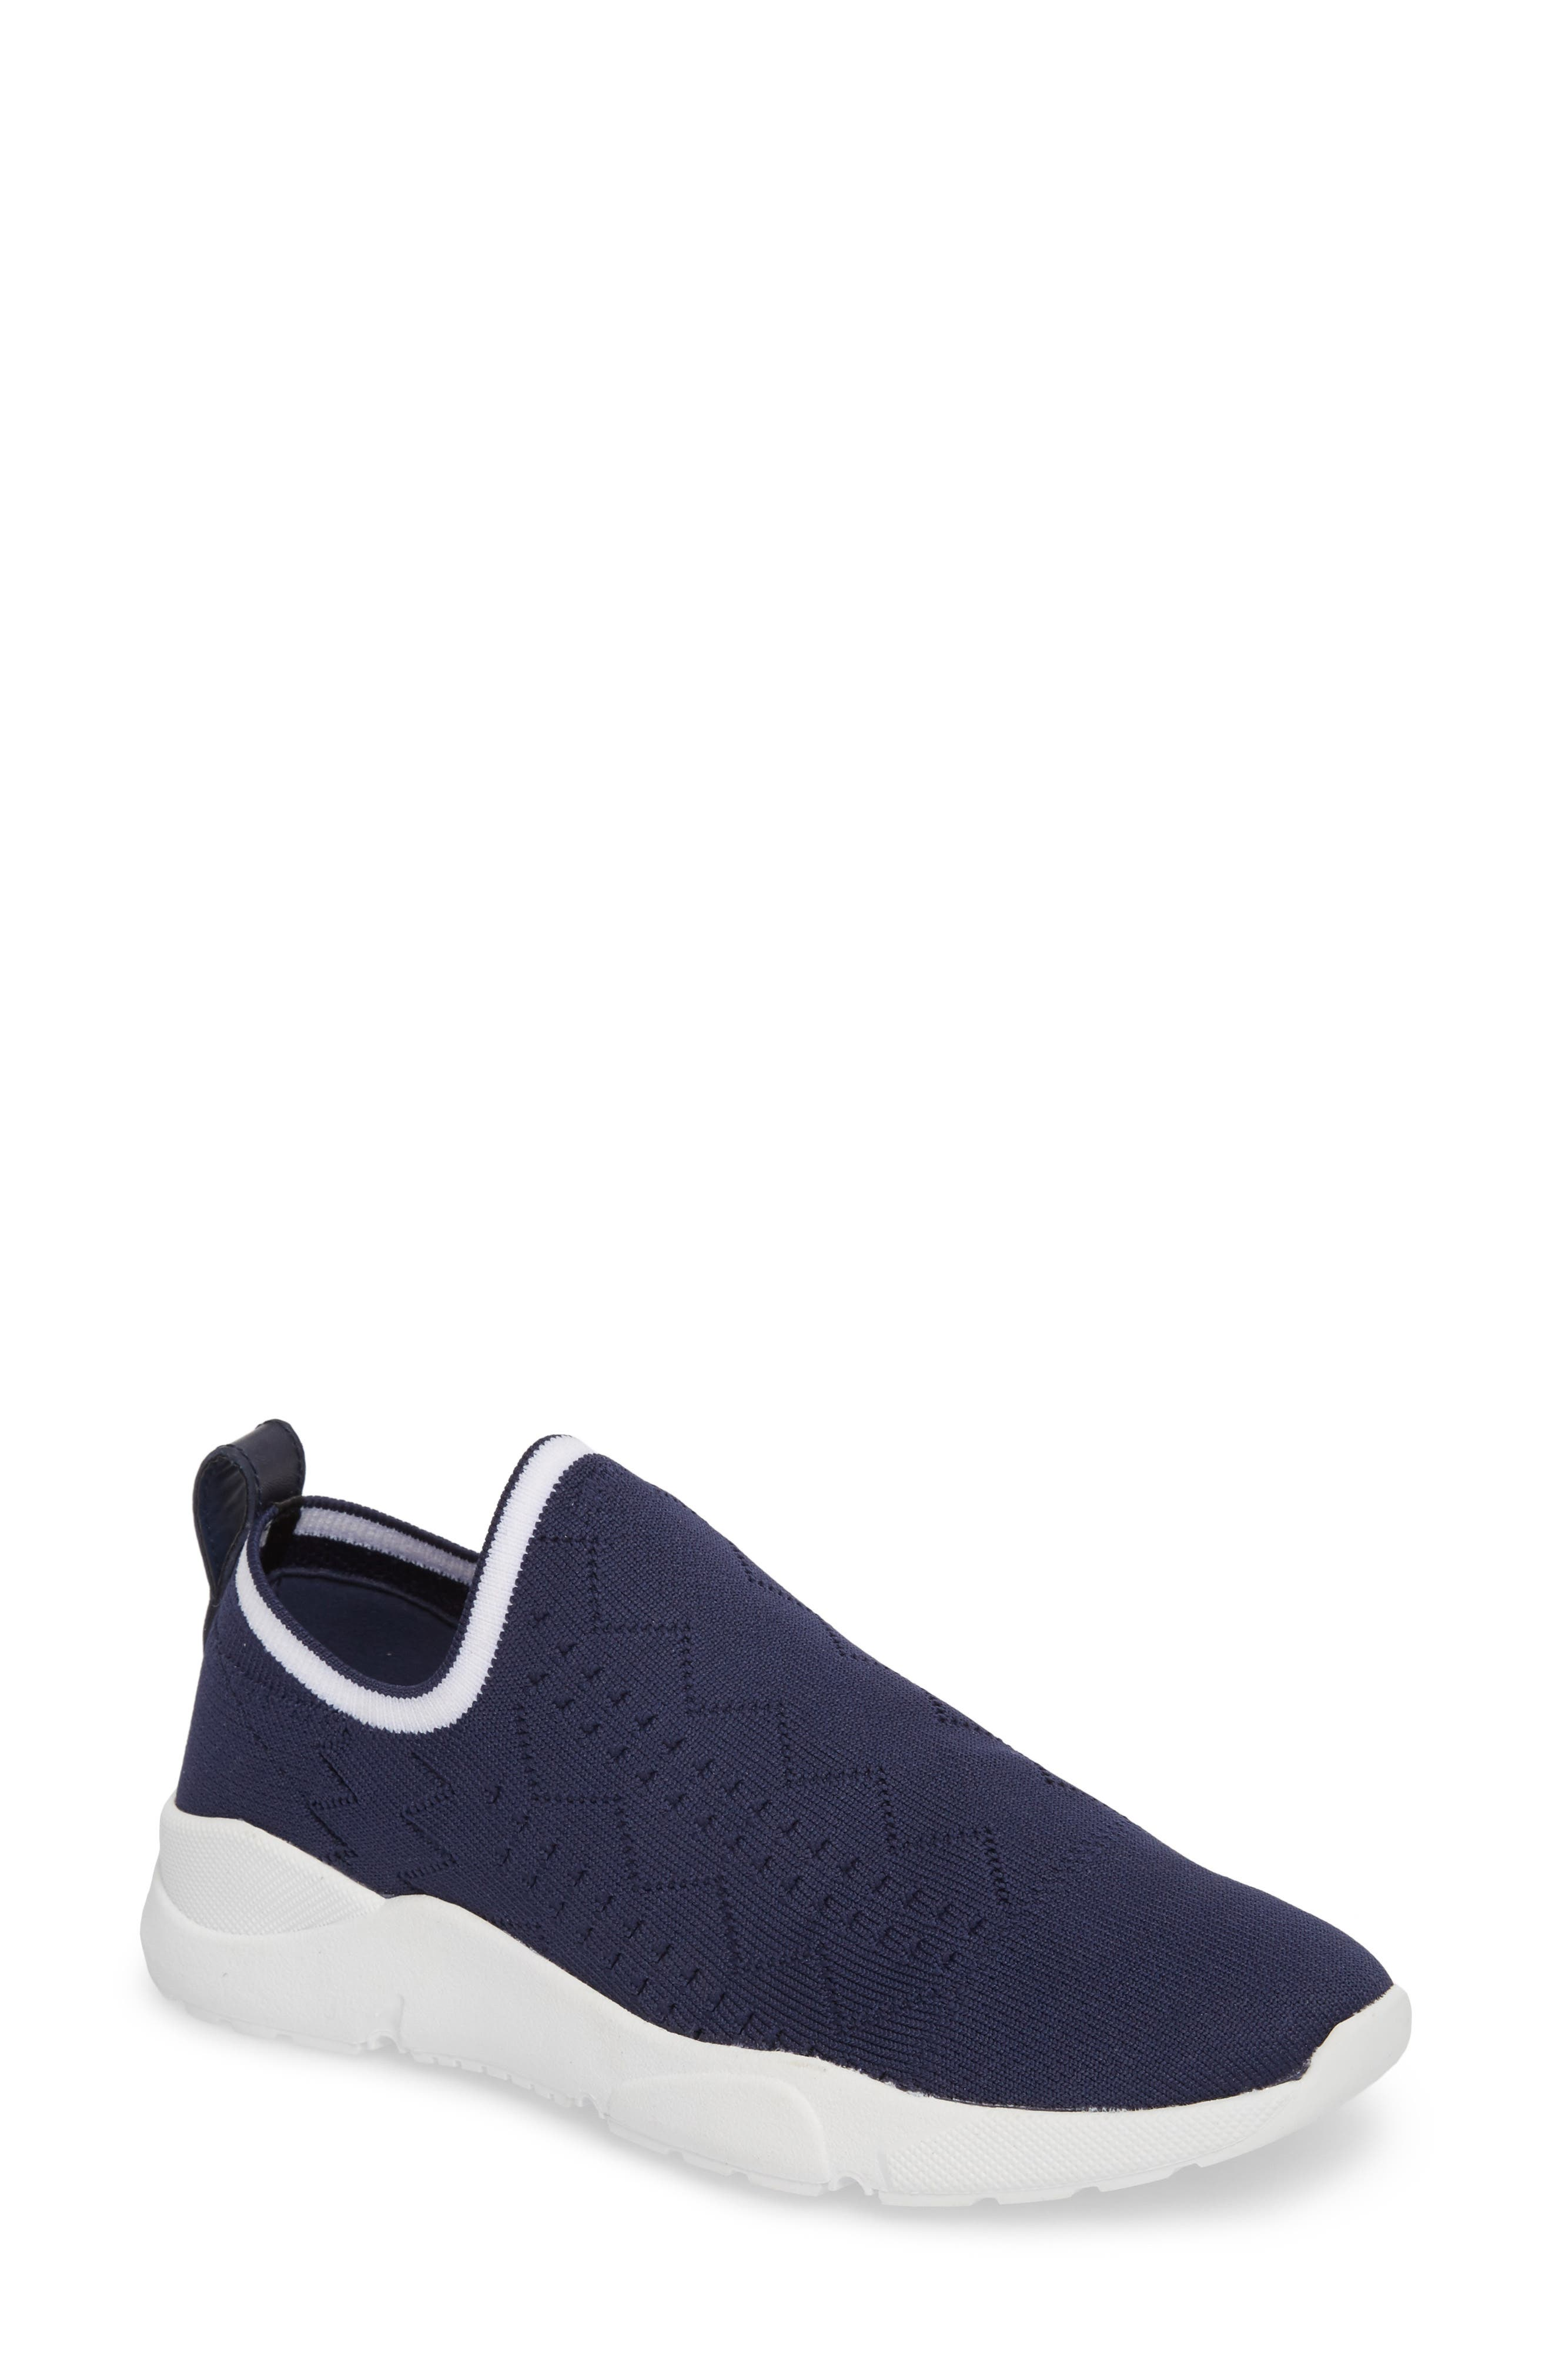 Karrie Slip-On Sneaker,                             Main thumbnail 1, color,                             Navy Stretch Fabric